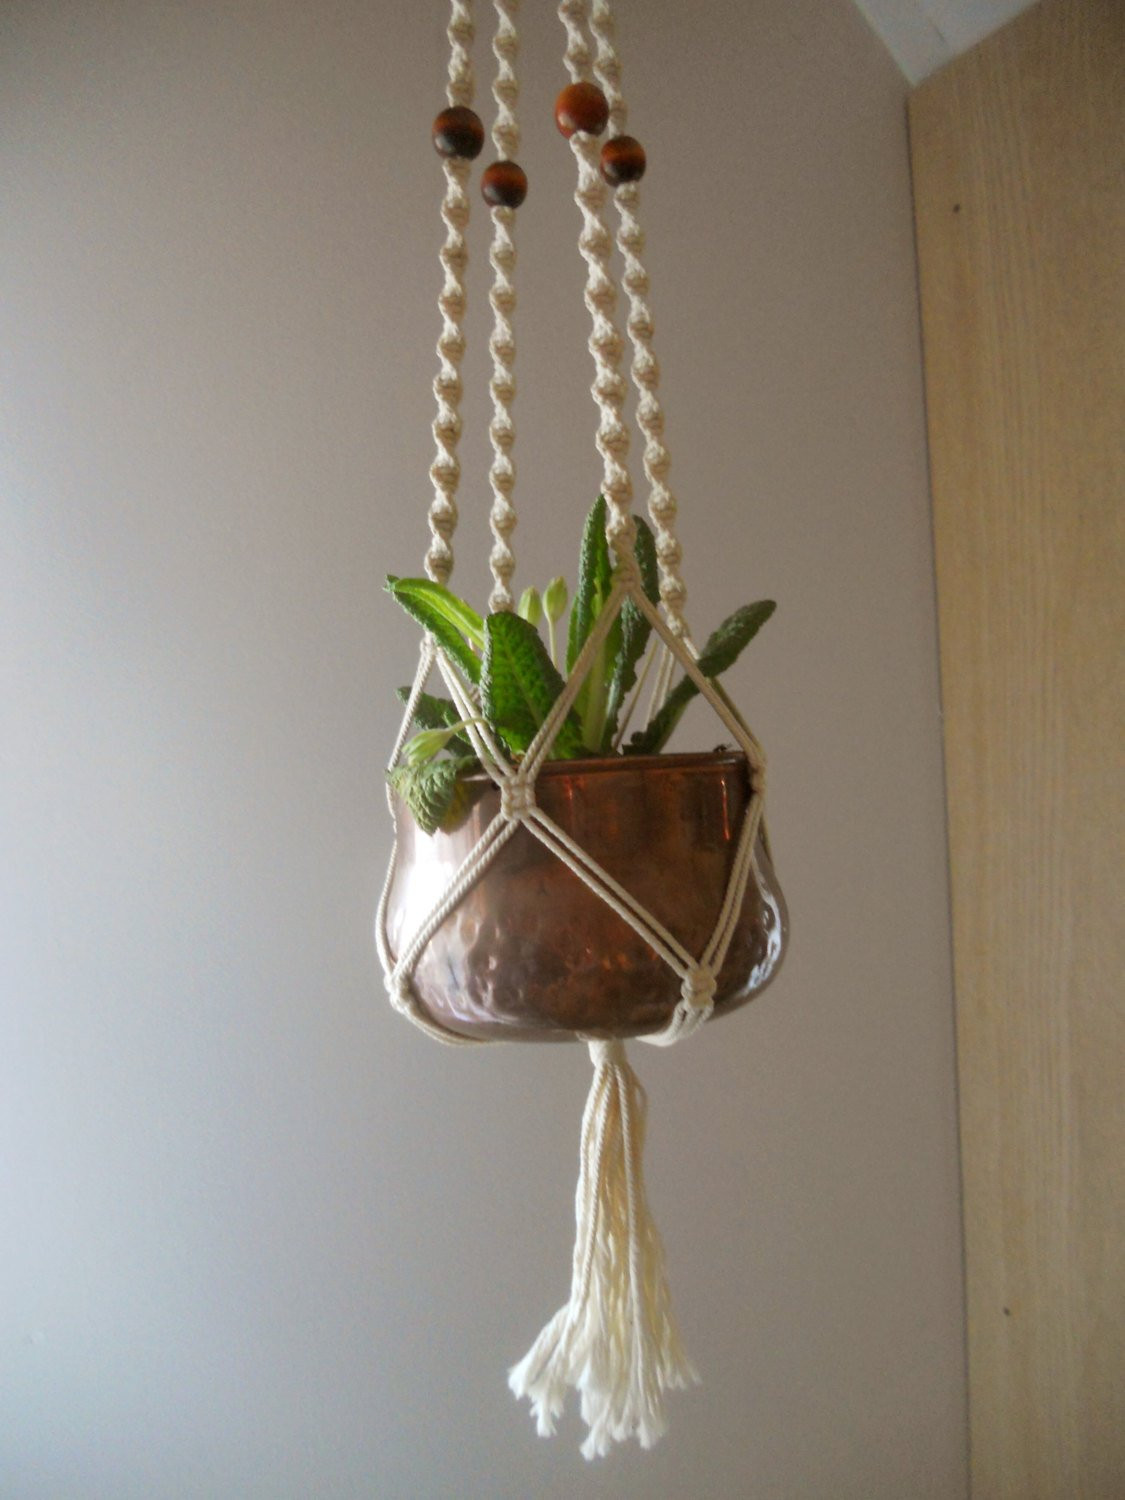 Vintage macrame plant hanger White Macrame flower pot holder